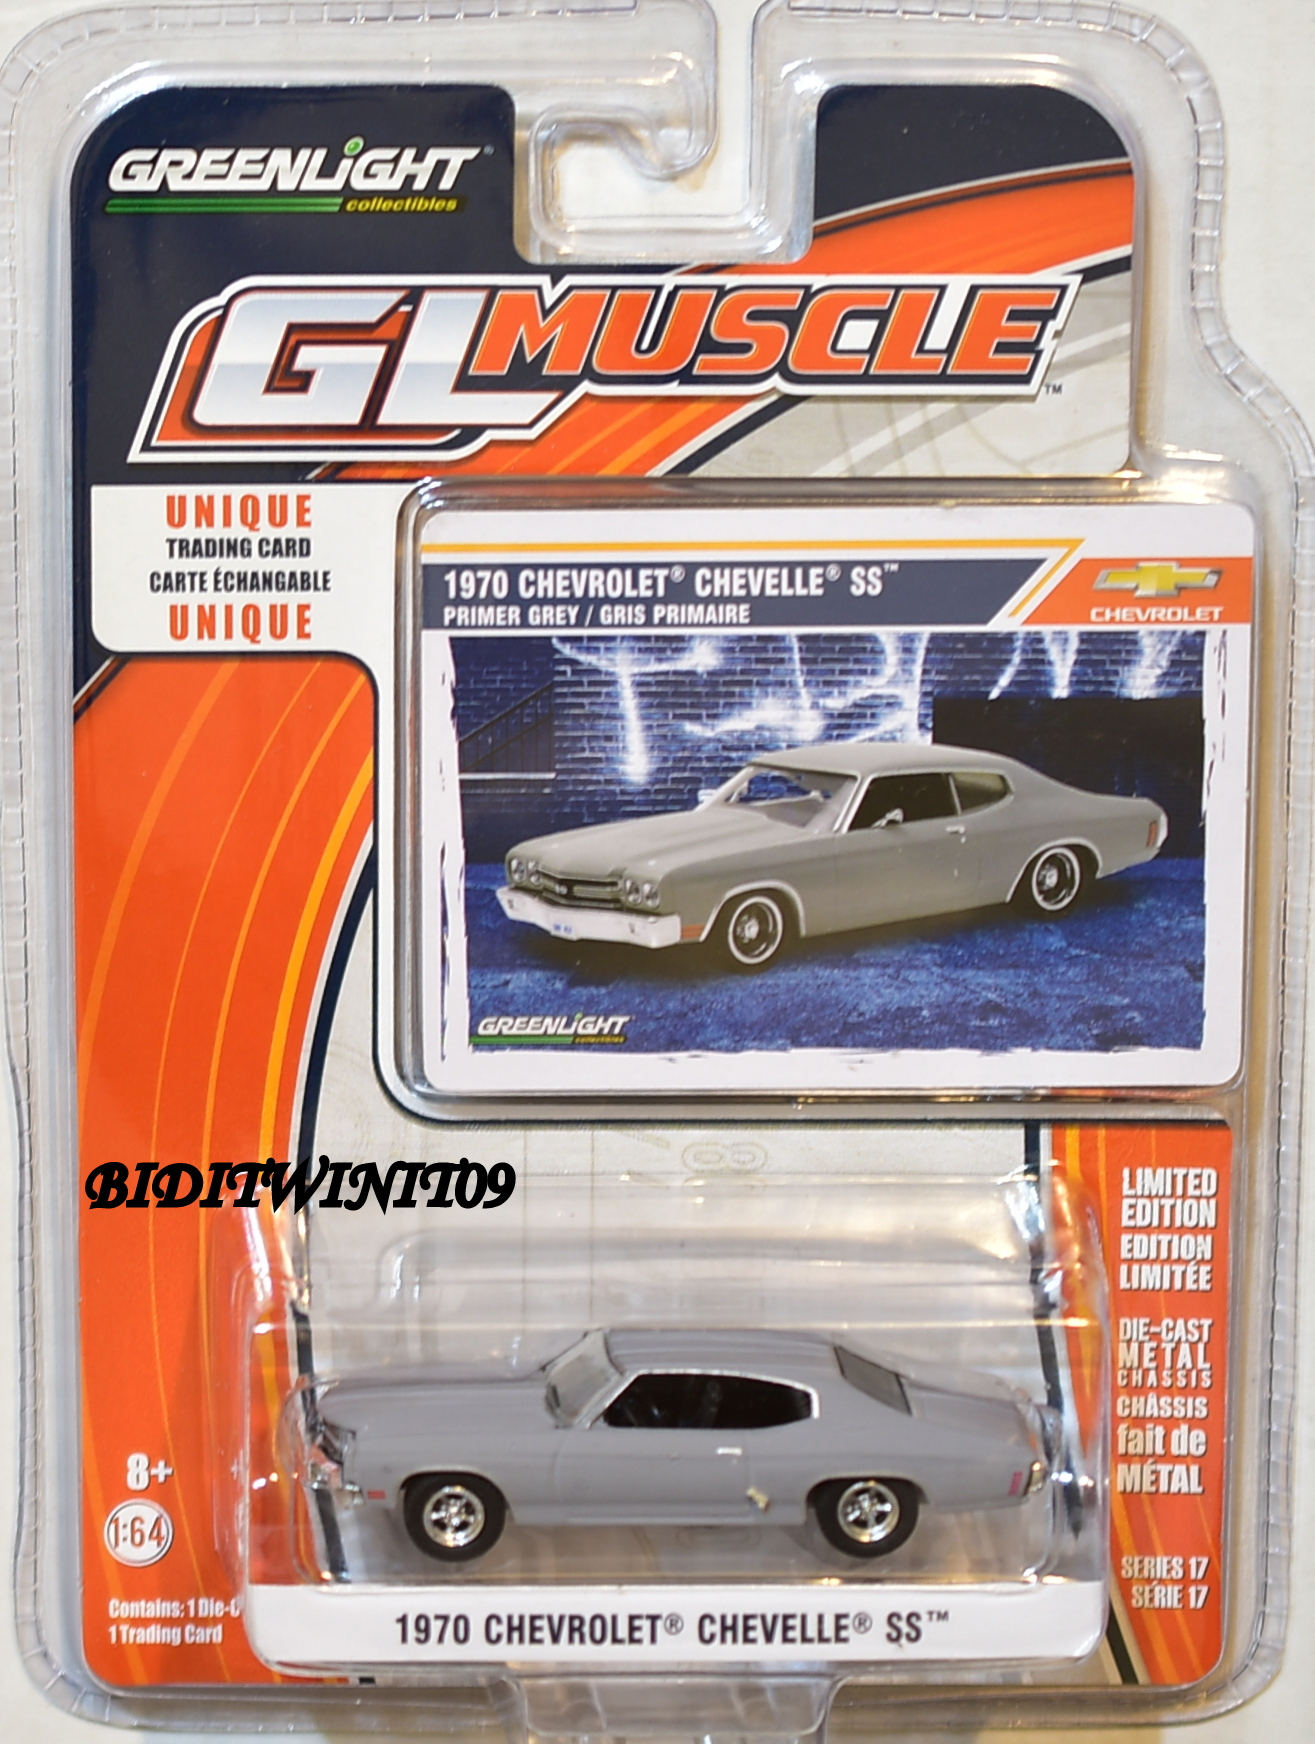 GREENLIGHT GLMUSCLE SERIES 17 1970 CHEVROLET CHEVELLE SS GREY